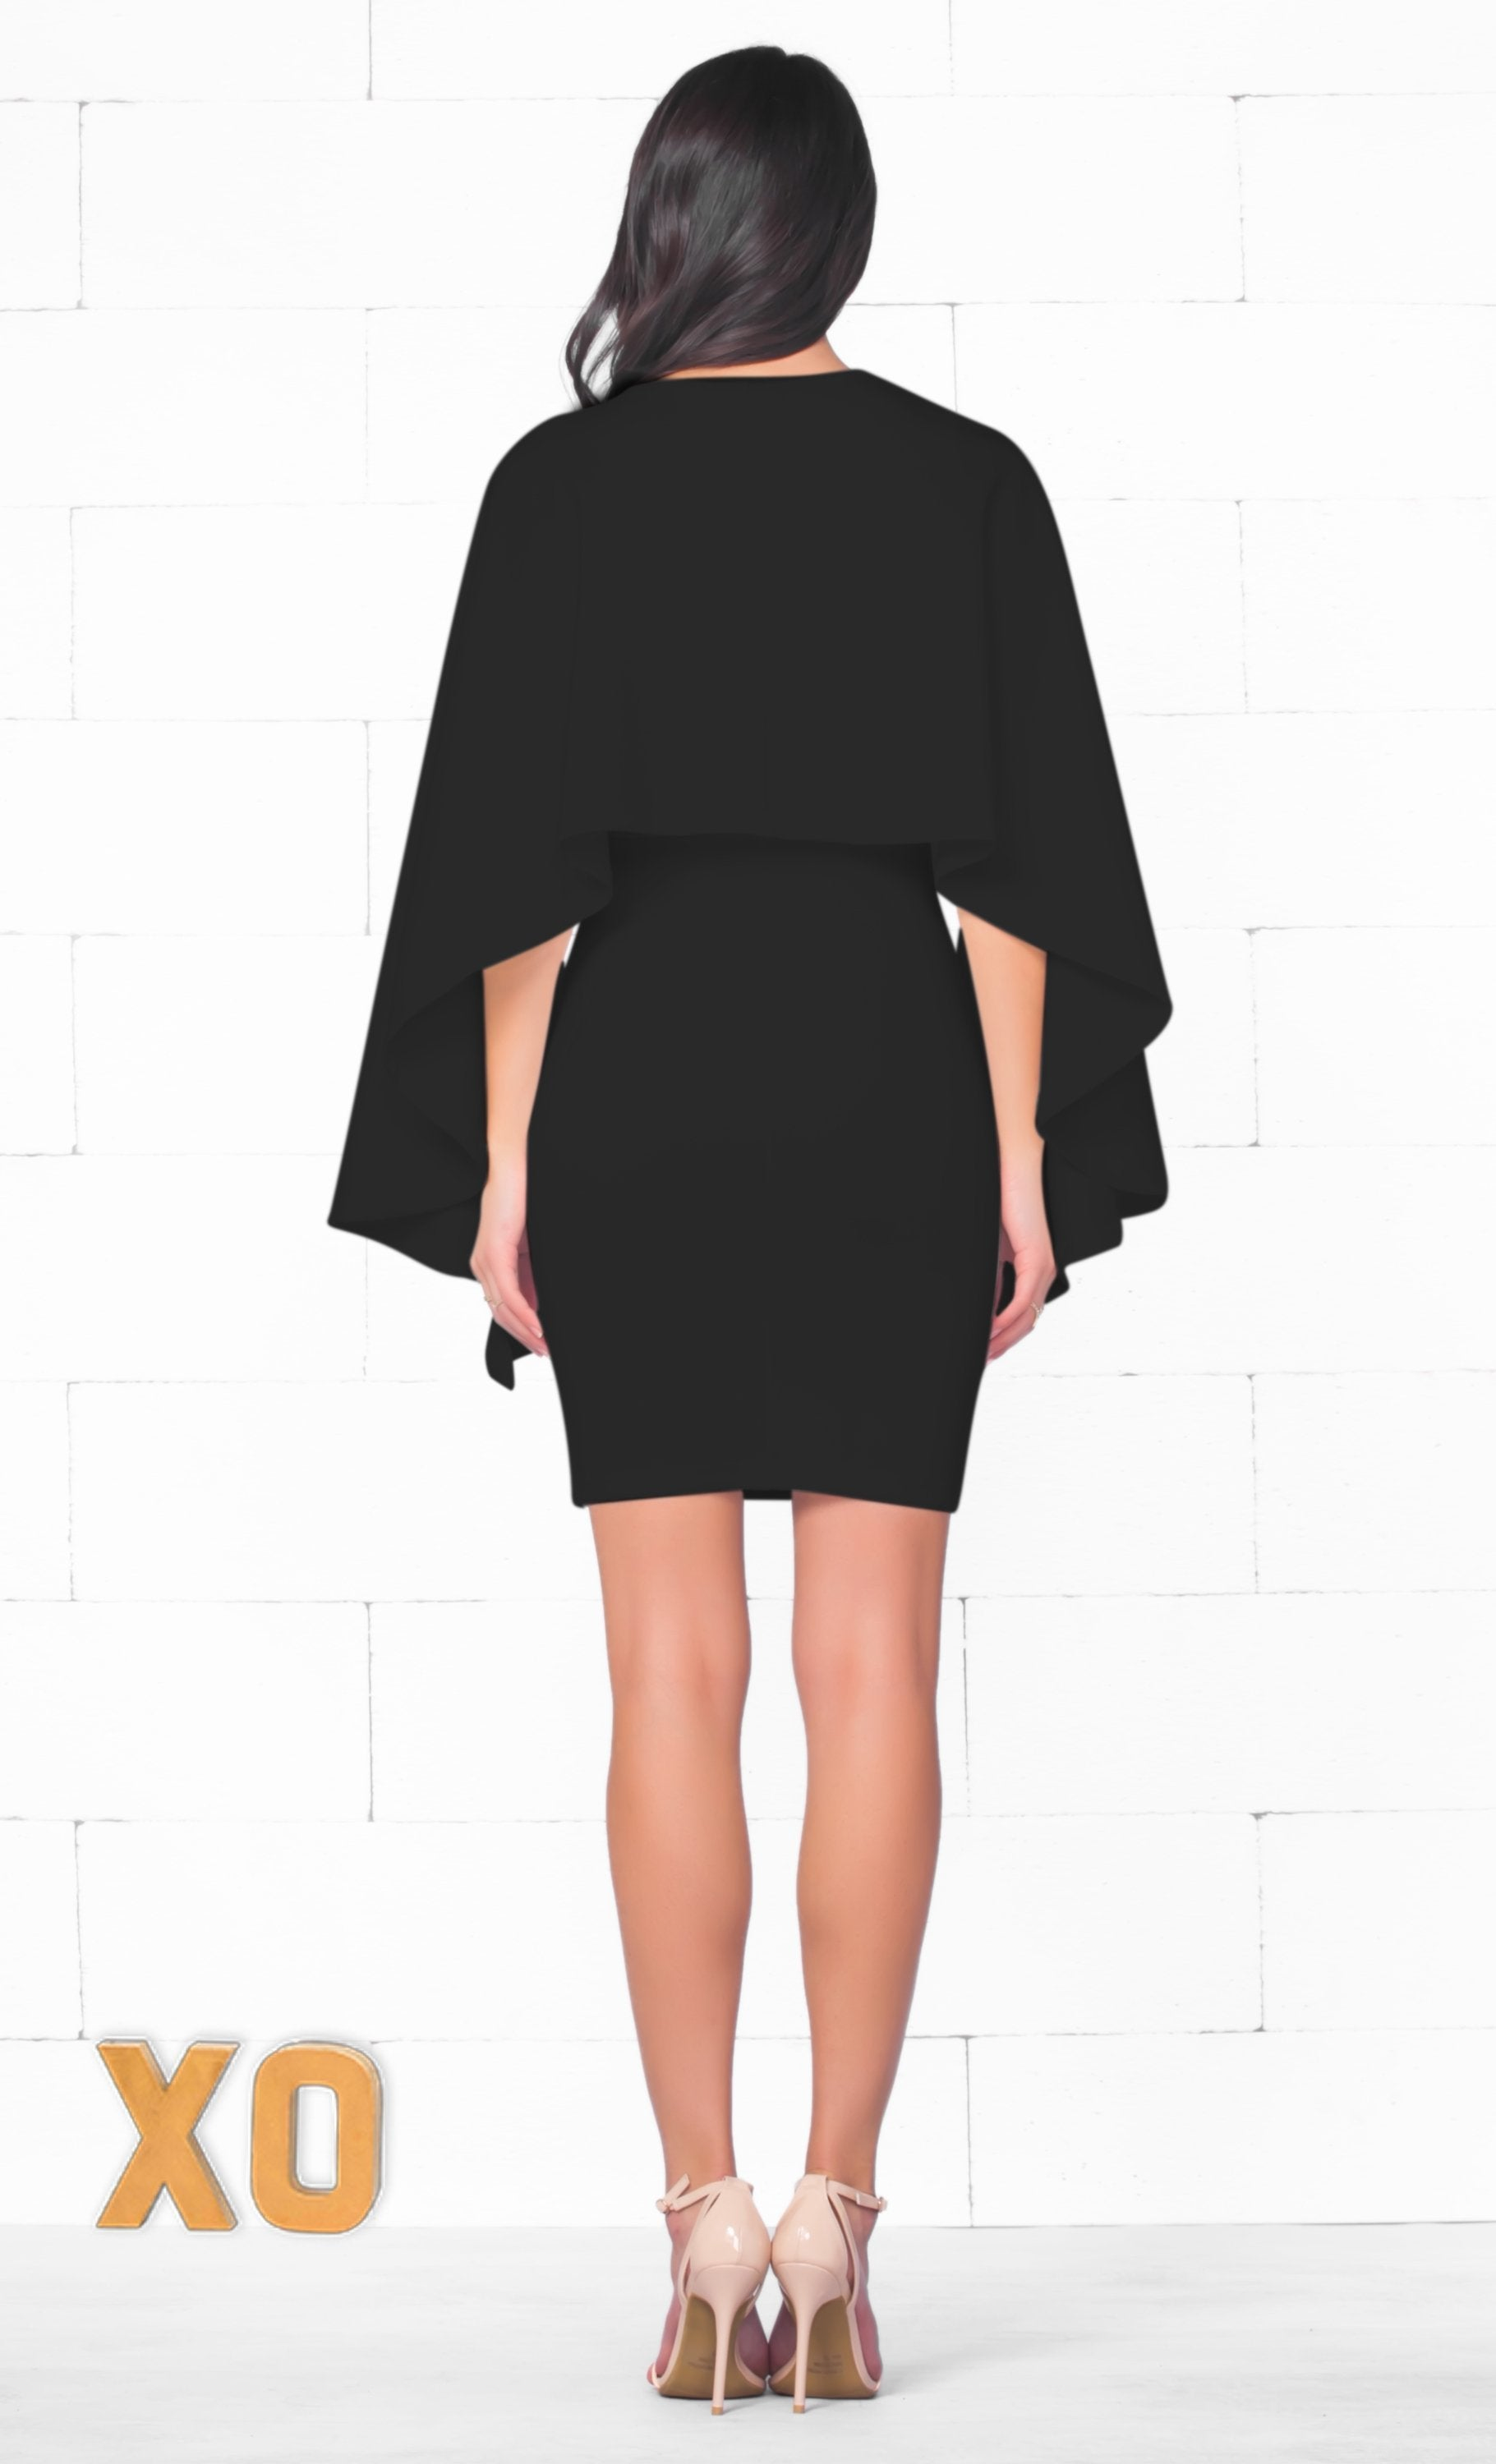 Indie XO Simply Irresistible Black Long Split Sleeve Deep V Neck Bodycon Cape Mini Dress - Just Ours! Sold Out